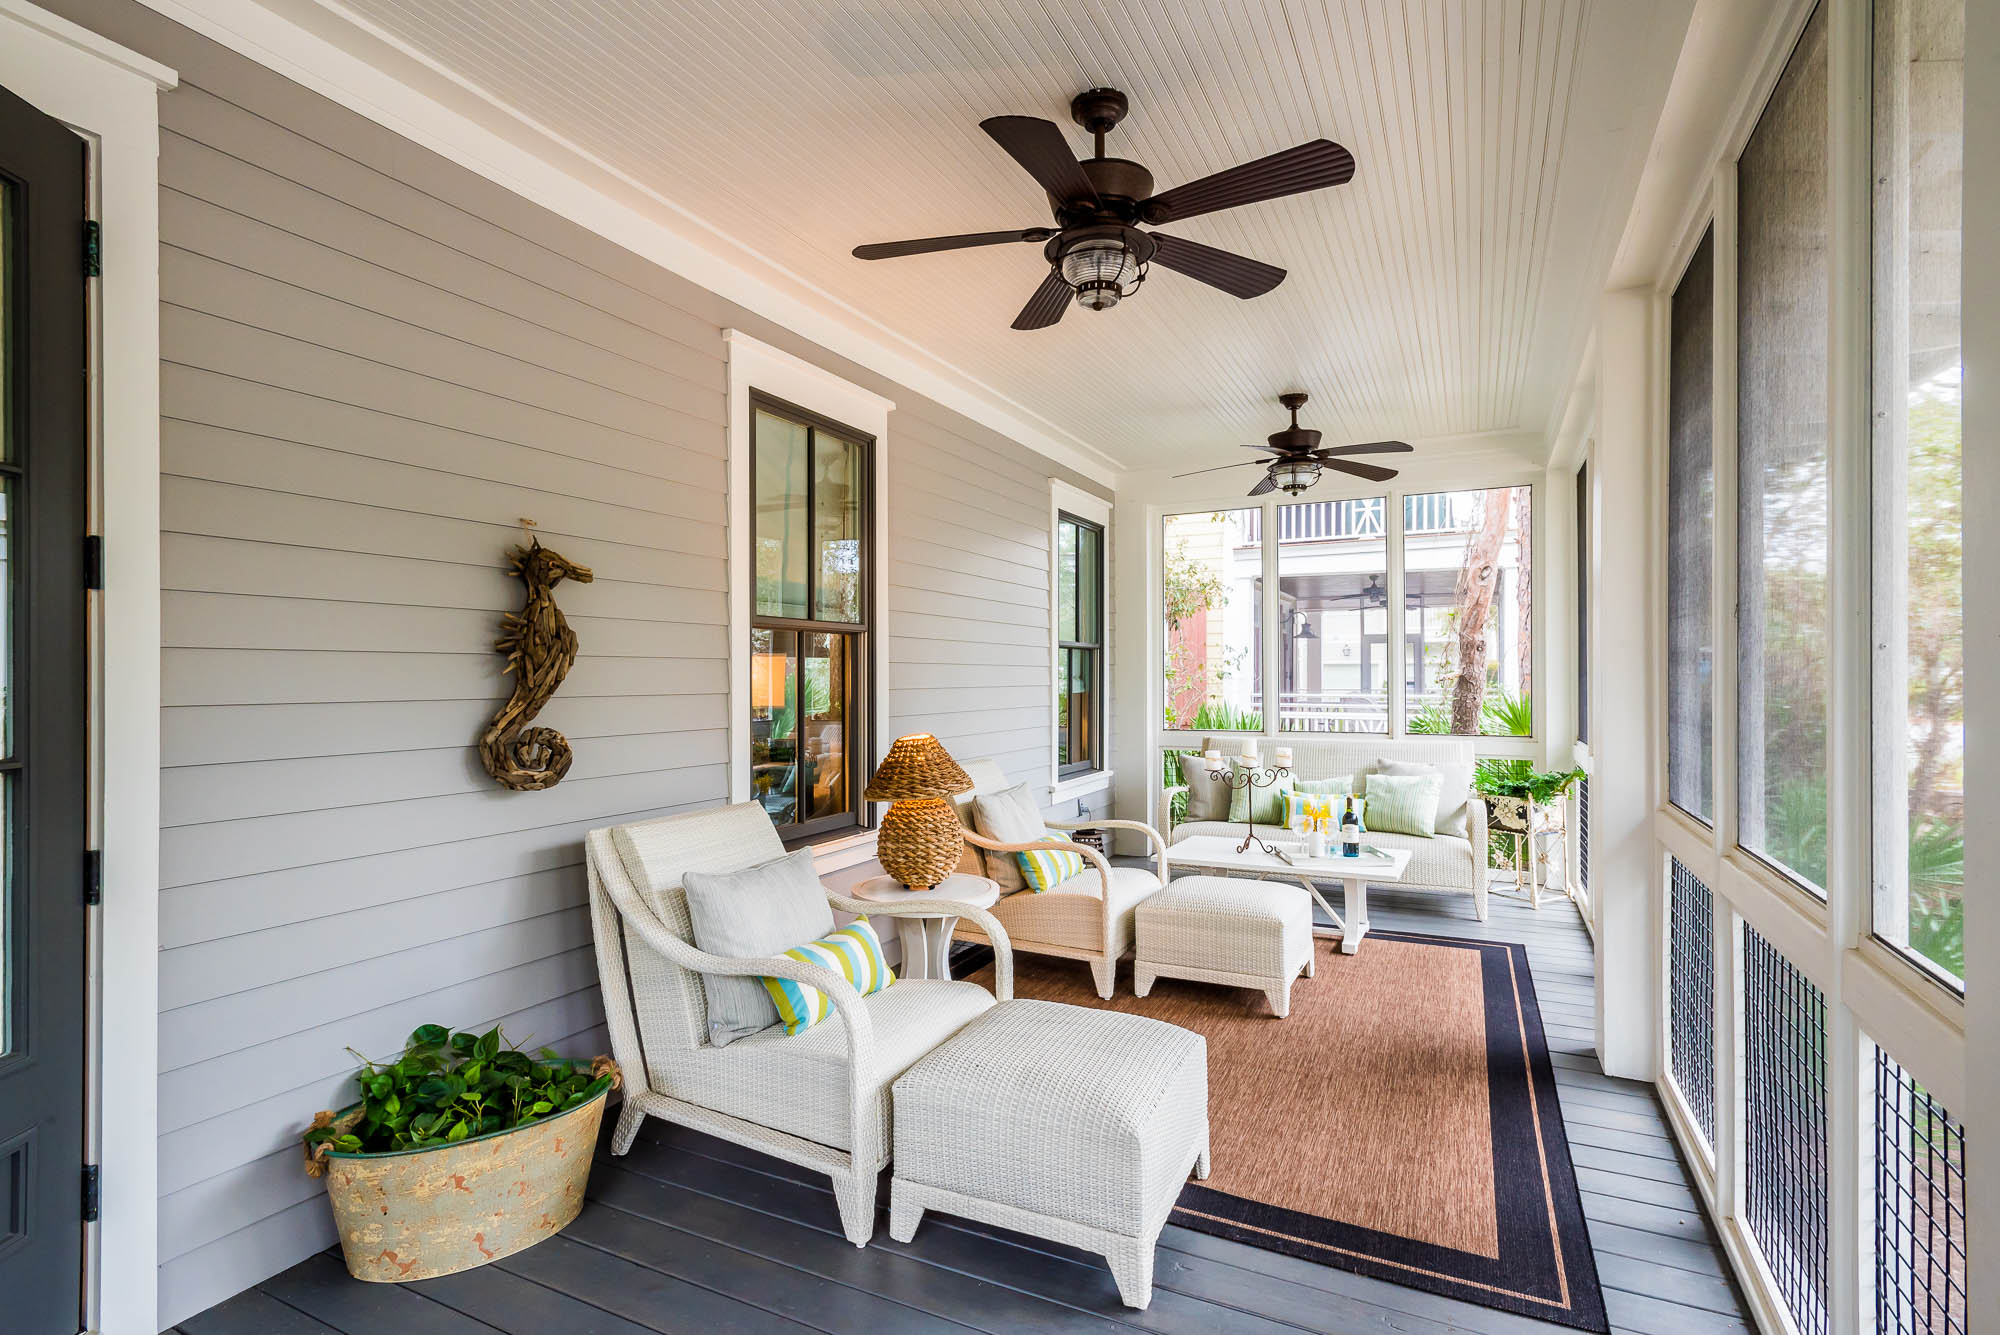 Relax the day away inside the front screened porch